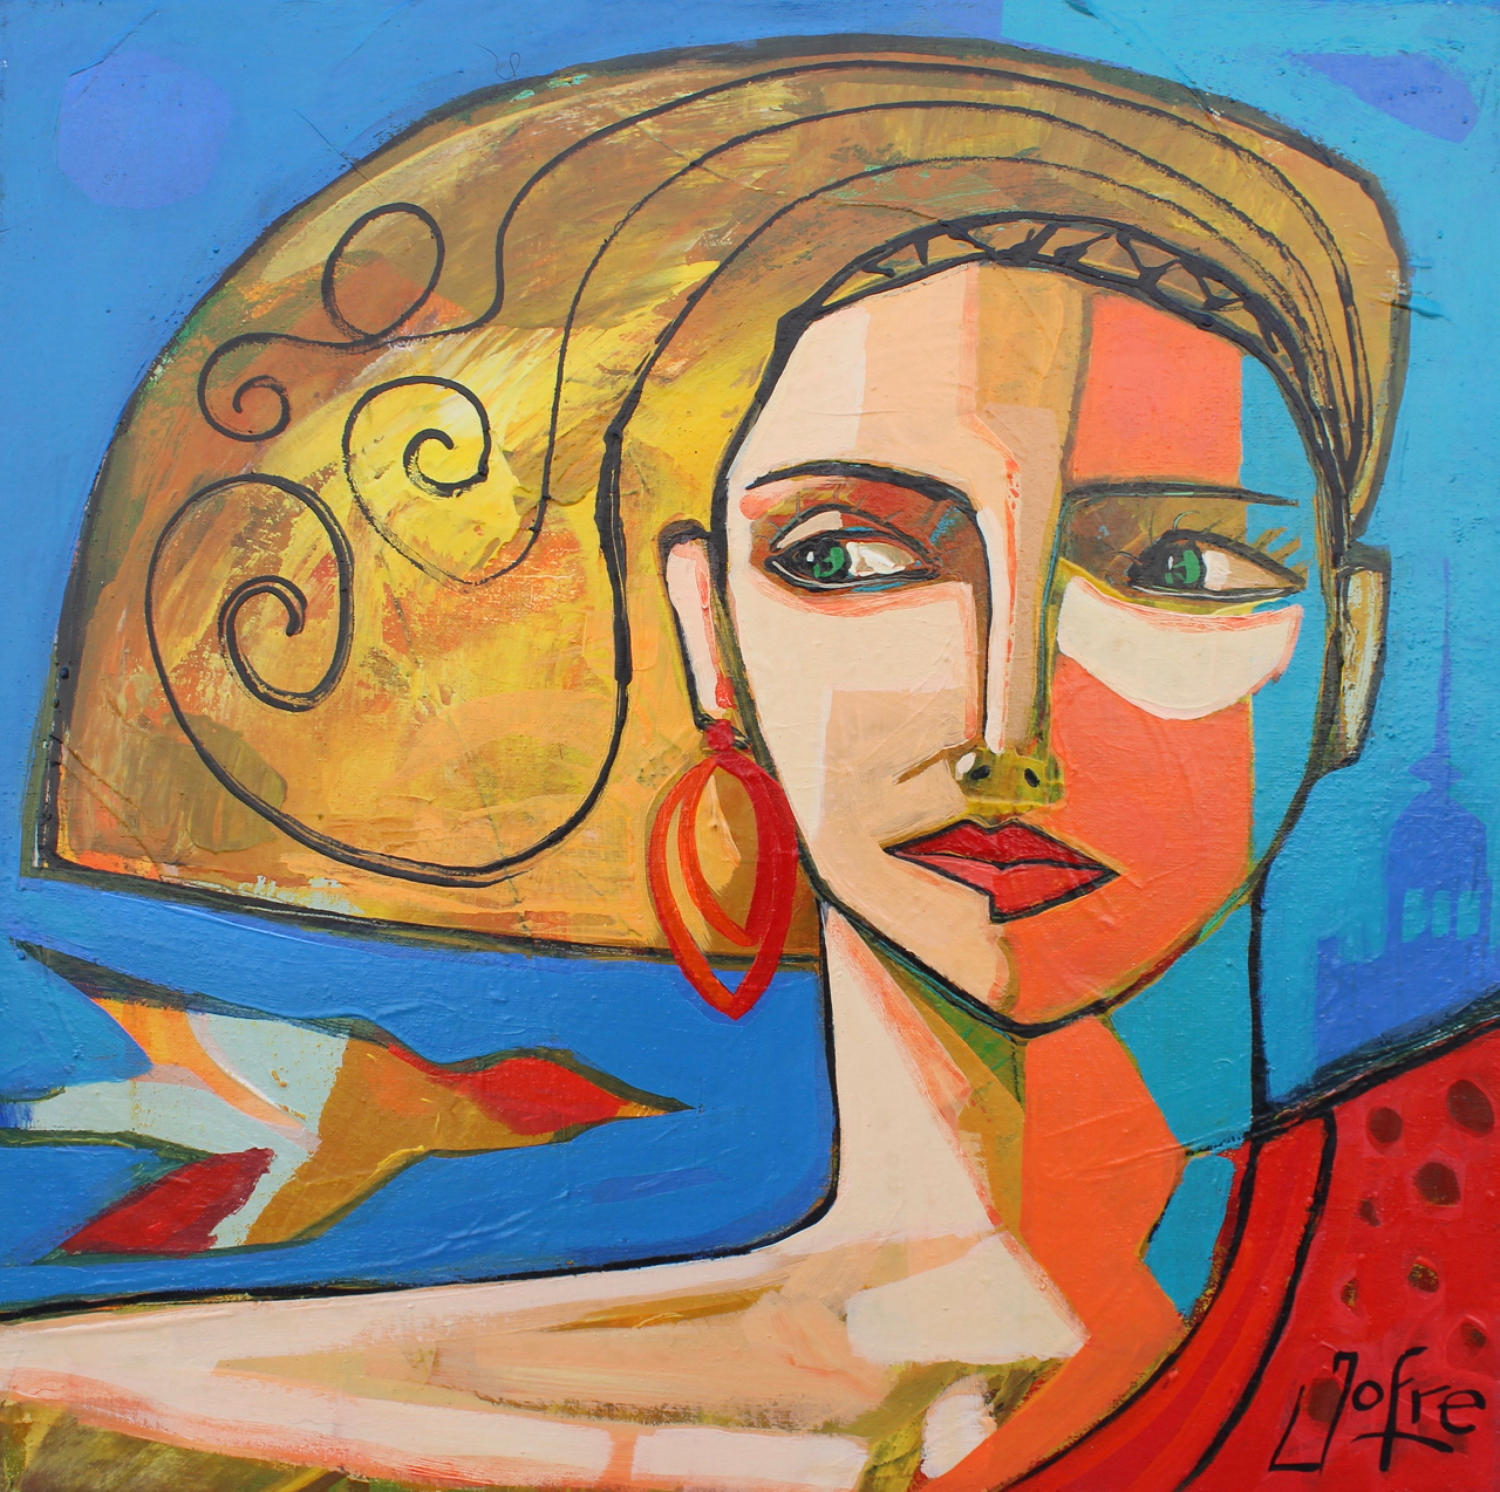 Robert Jofre - Homecoming SOLD